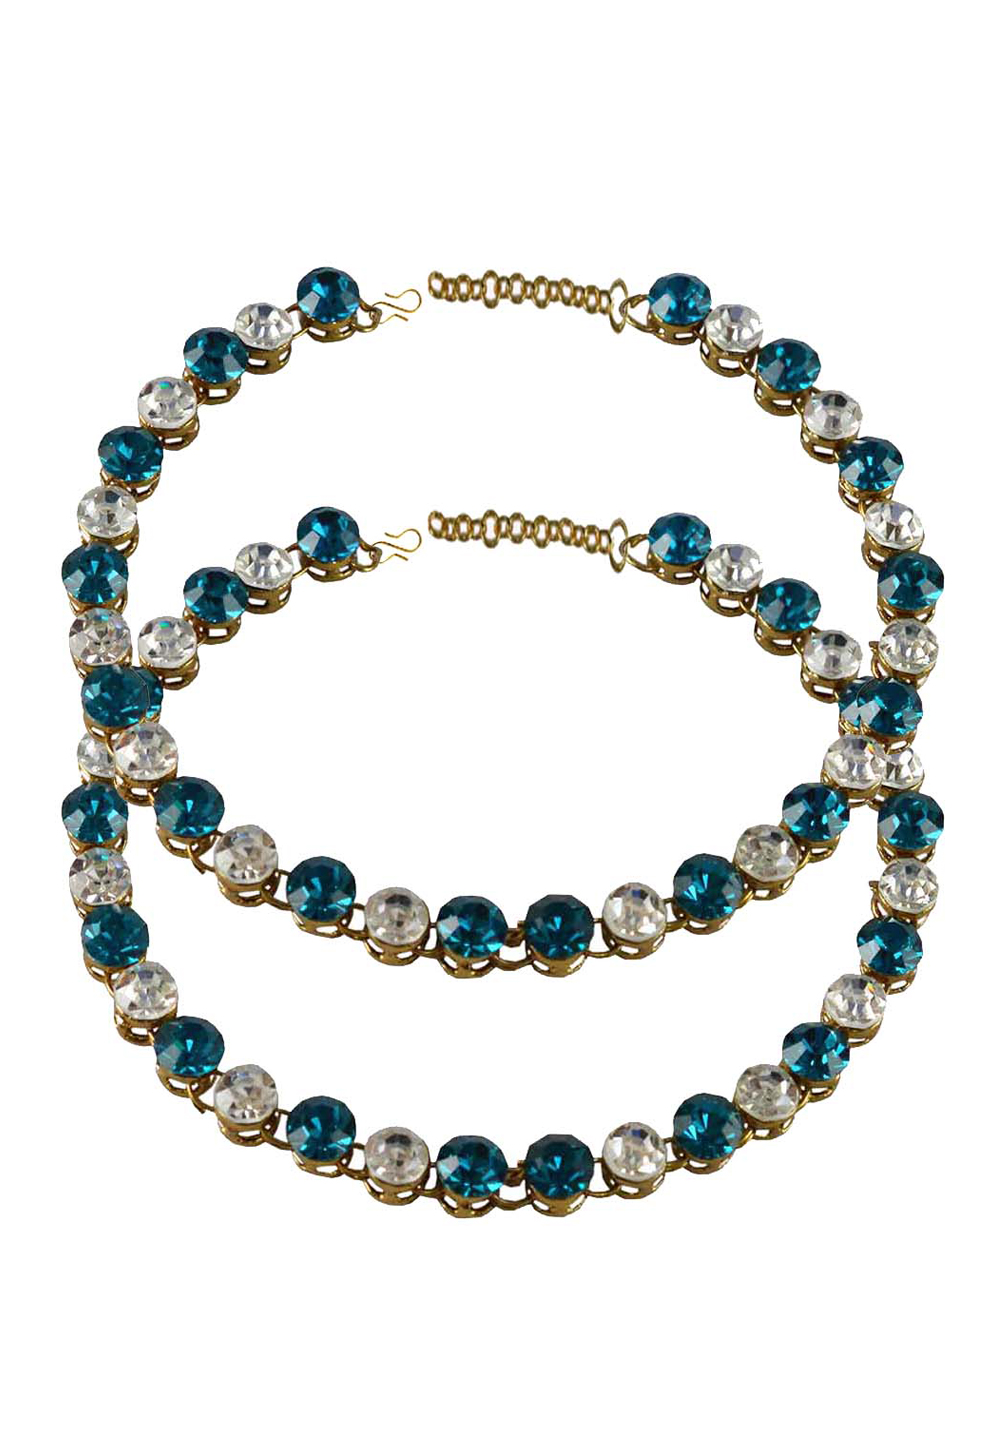 Blue Brass Gold Plated Anklets 171262